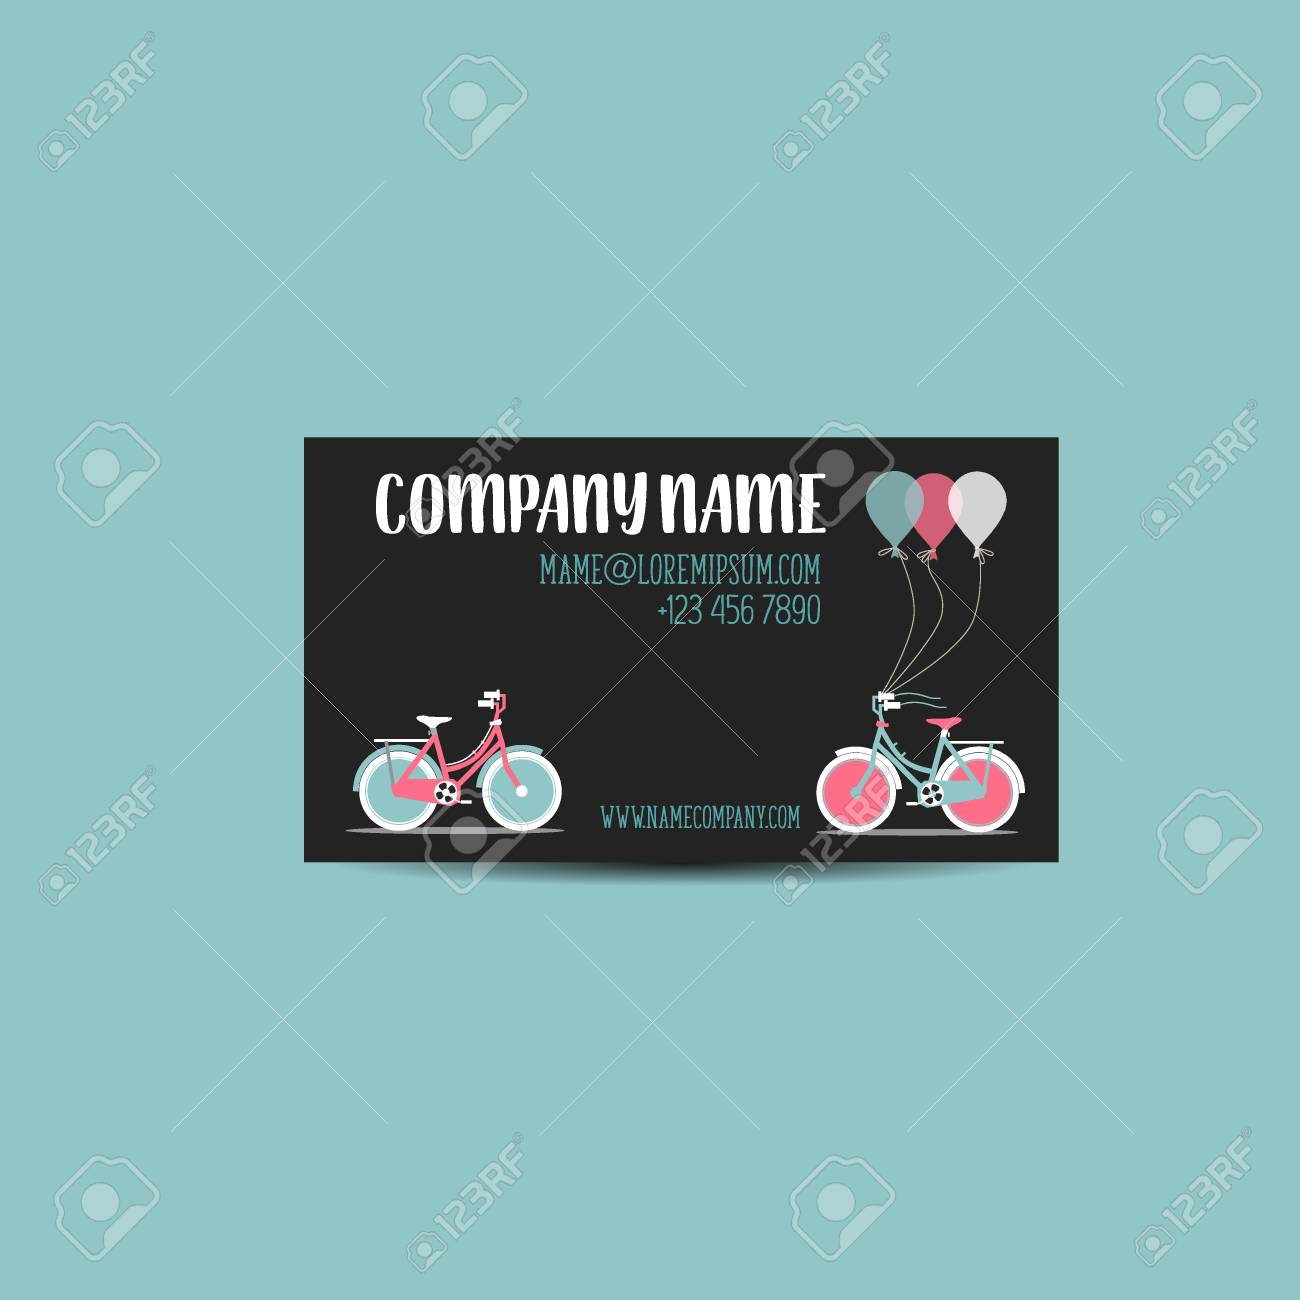 Business Card With Bicycle Template Royalty Free Cliparts, Vectors ...